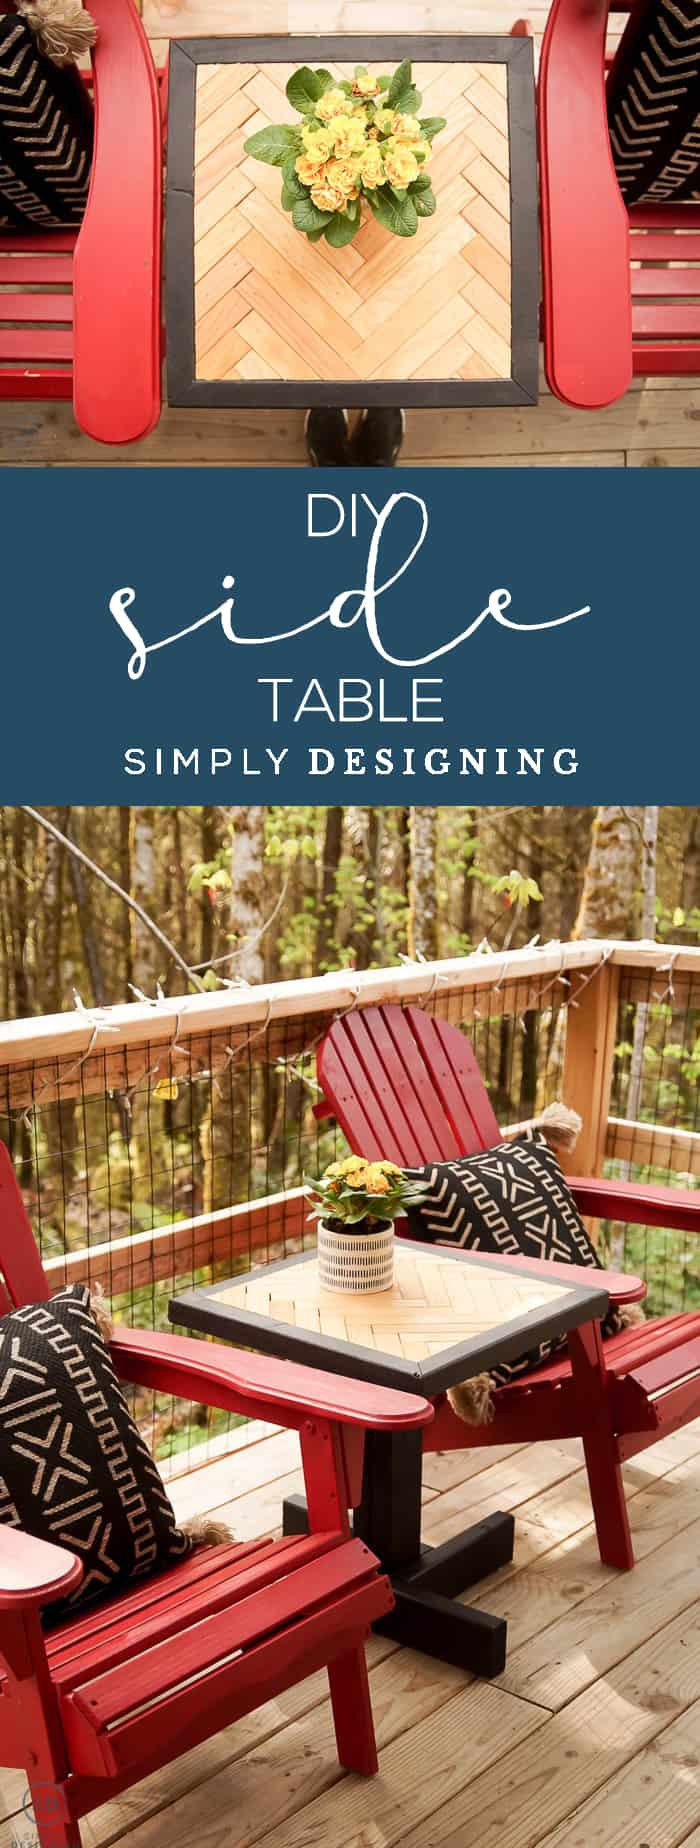 This beautiful DIY Side Table is a great way to create a stunning end table for inside or outside with scrap wood you may already have